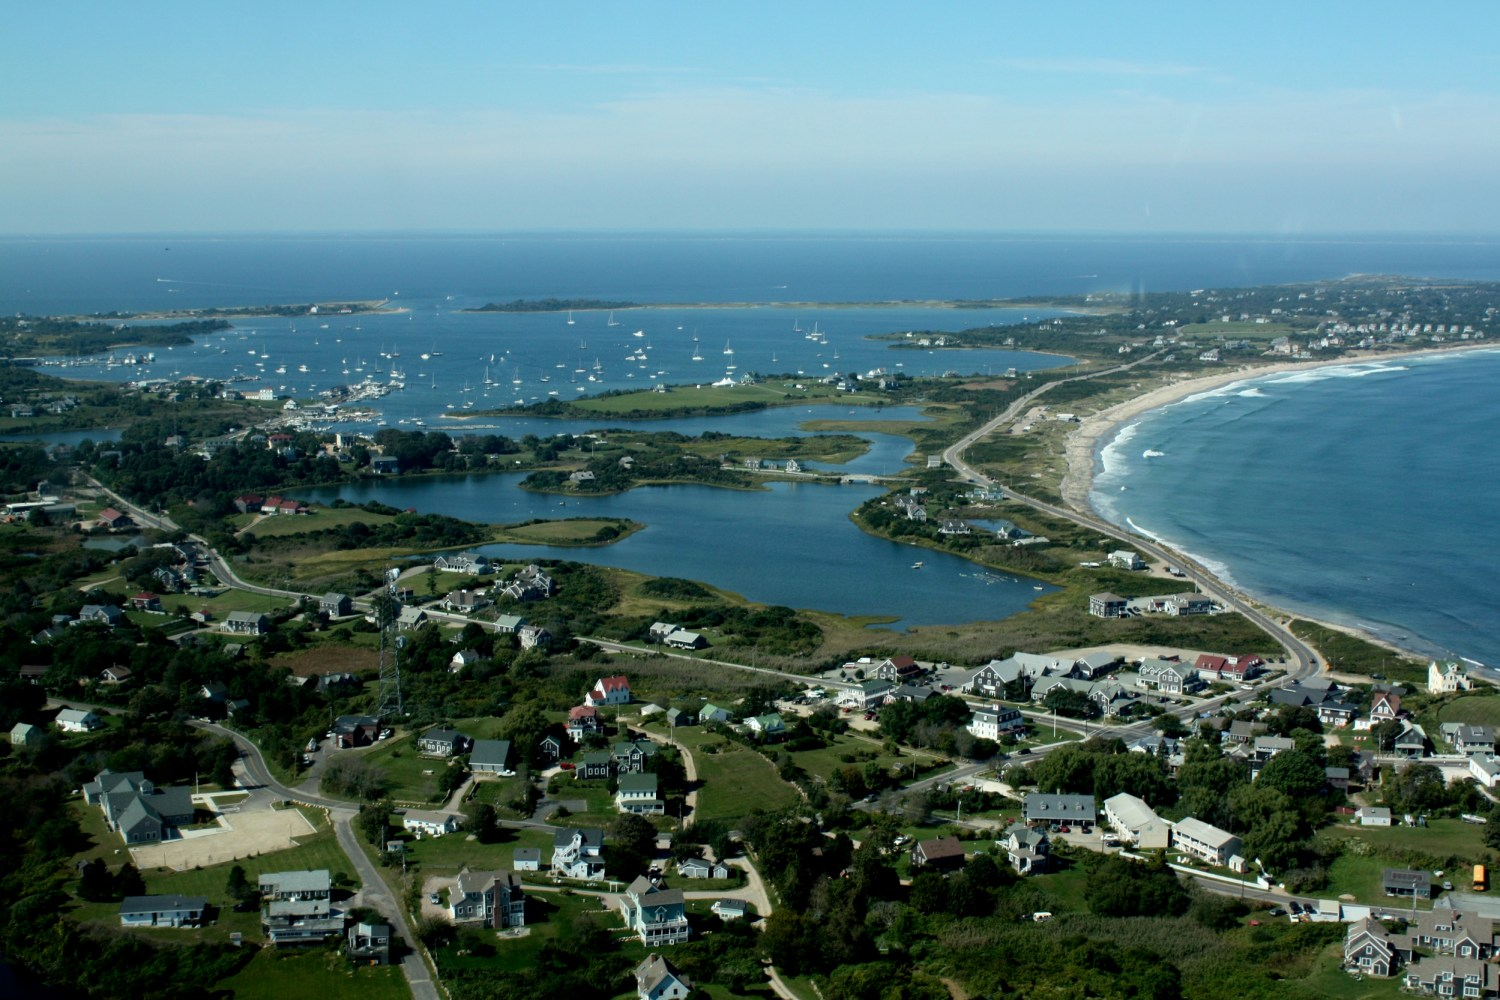 Block Island and the Rhode Island coast are dotted with homes, many of which use septic systems to dispose of toilet waste. Rising sea levels will render these systems less effective at removing bacteria and nutrients. Photo courtesy of Flickr/Creative Commons user eatswords